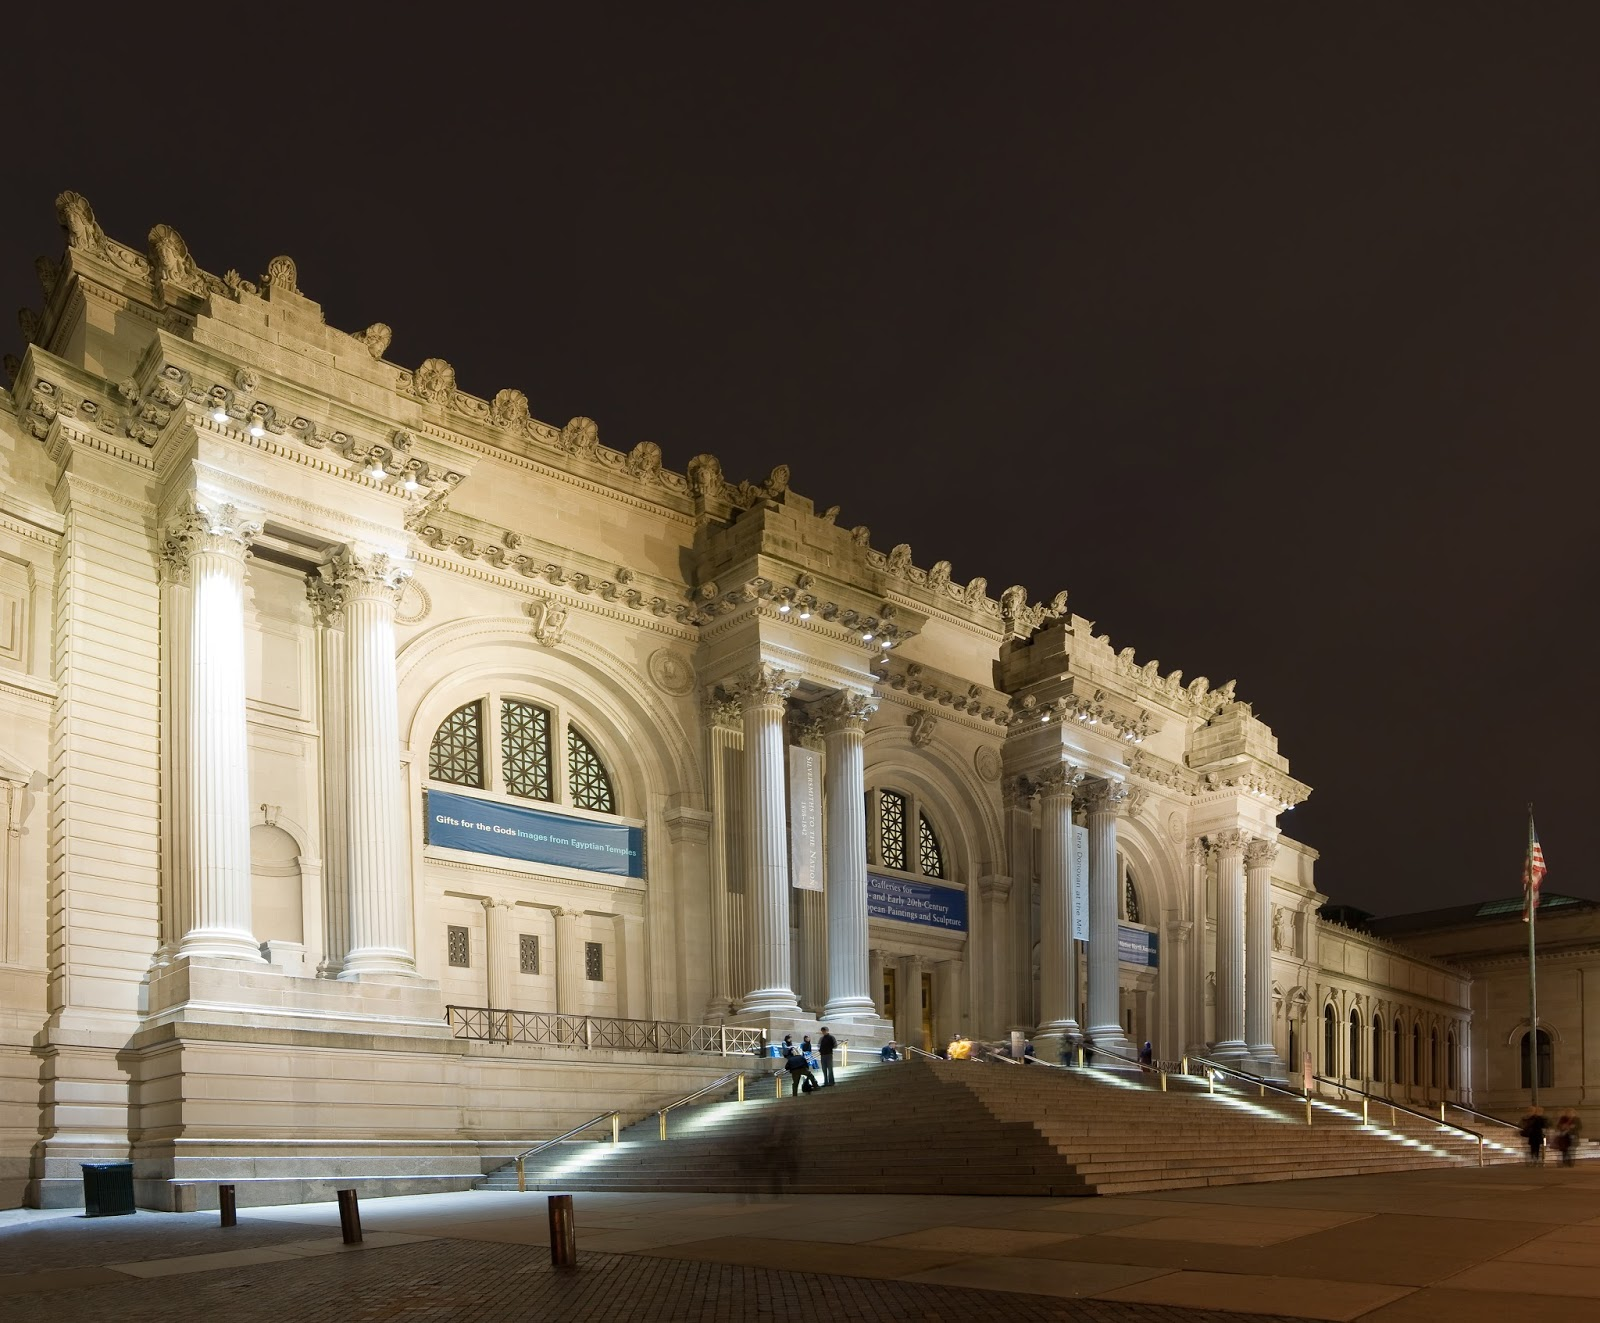 These Are The 25 Best Museums In The World - Metropolitan Museum of Art